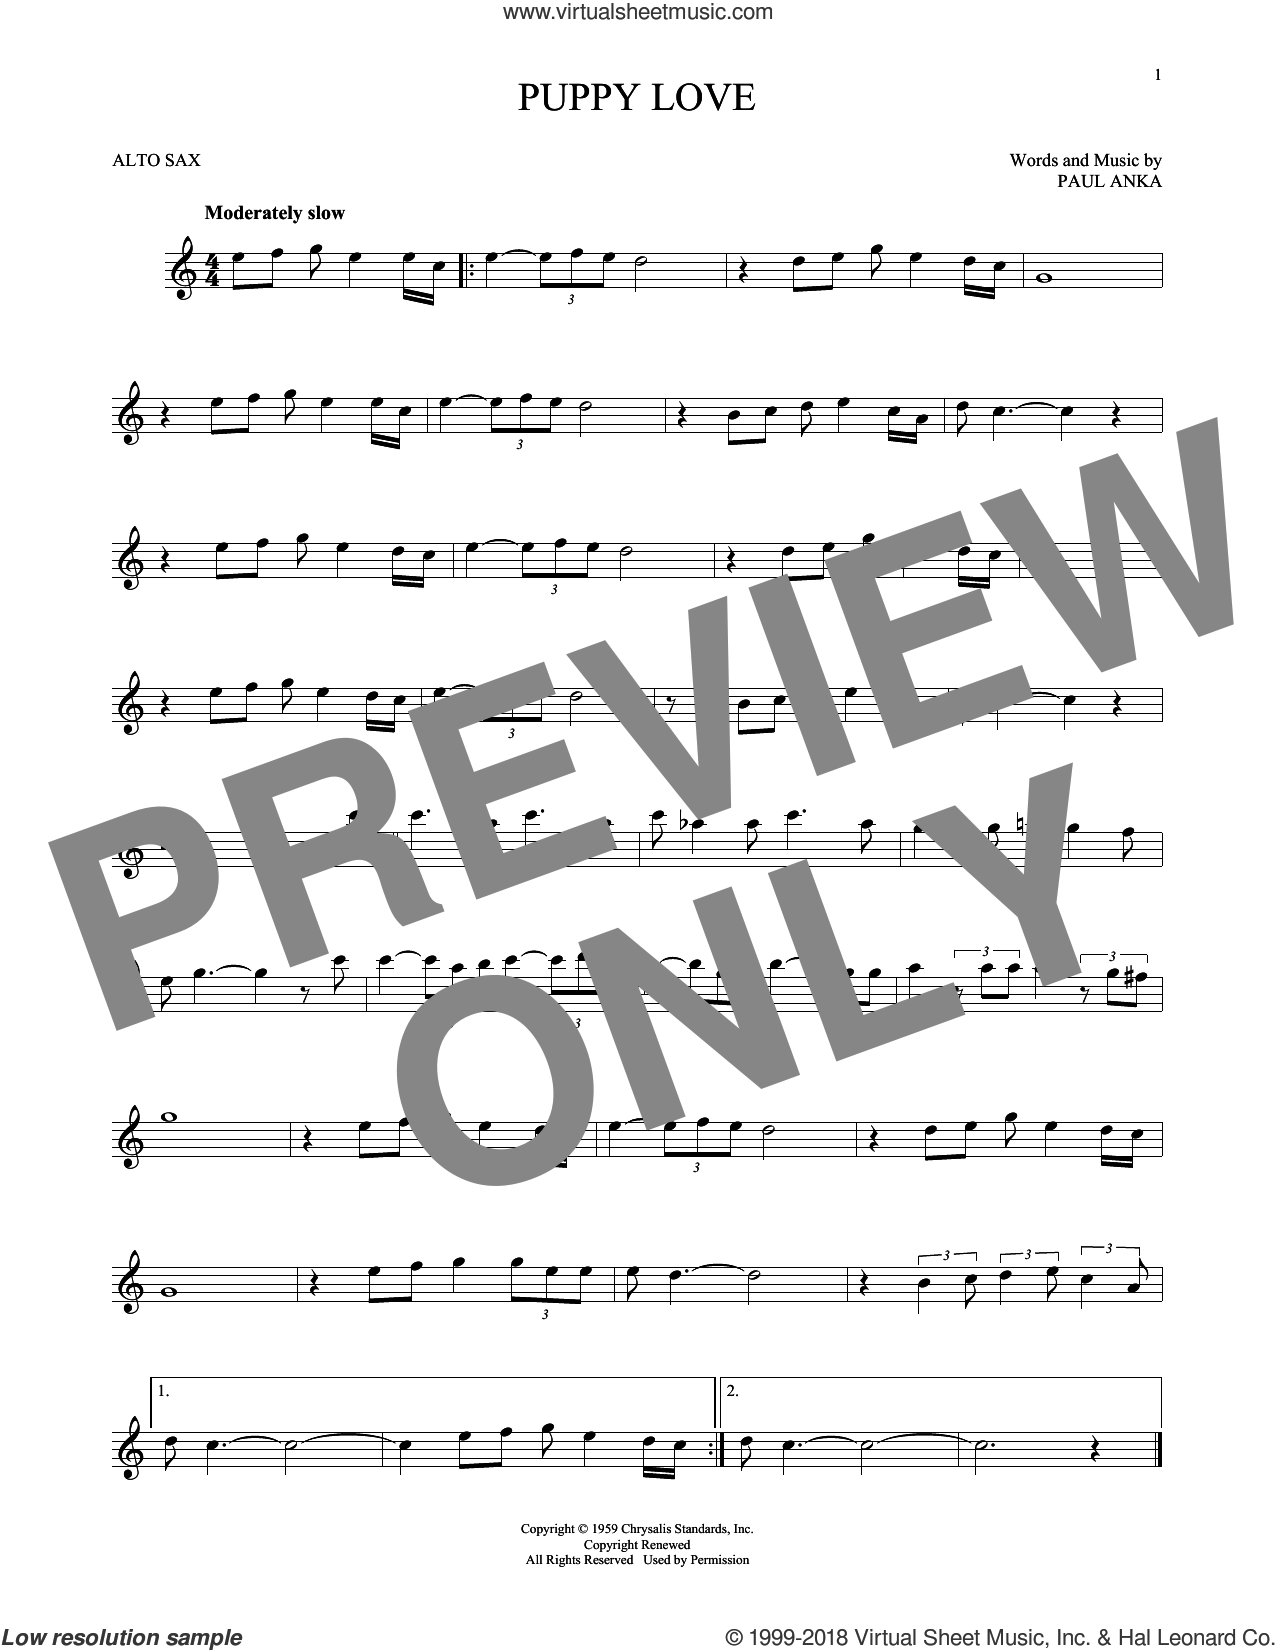 Puppy Love sheet music for alto saxophone solo by Paul Anka and Donny Osmond, intermediate skill level